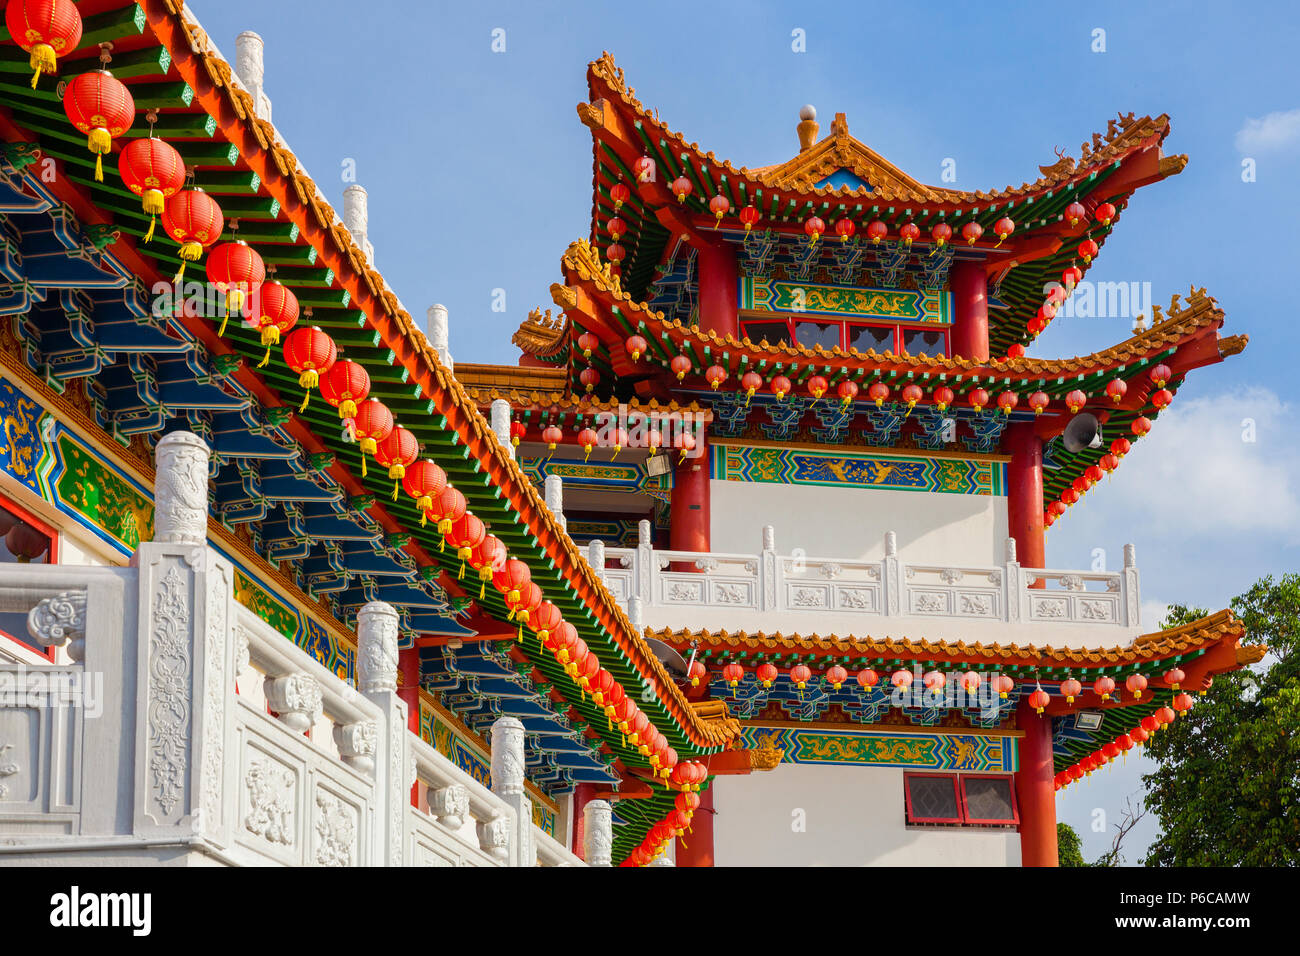 Thean Hou Temple decorated with red Chinese lanterns, Kuala Lumpur, Malaysia - Stock Image